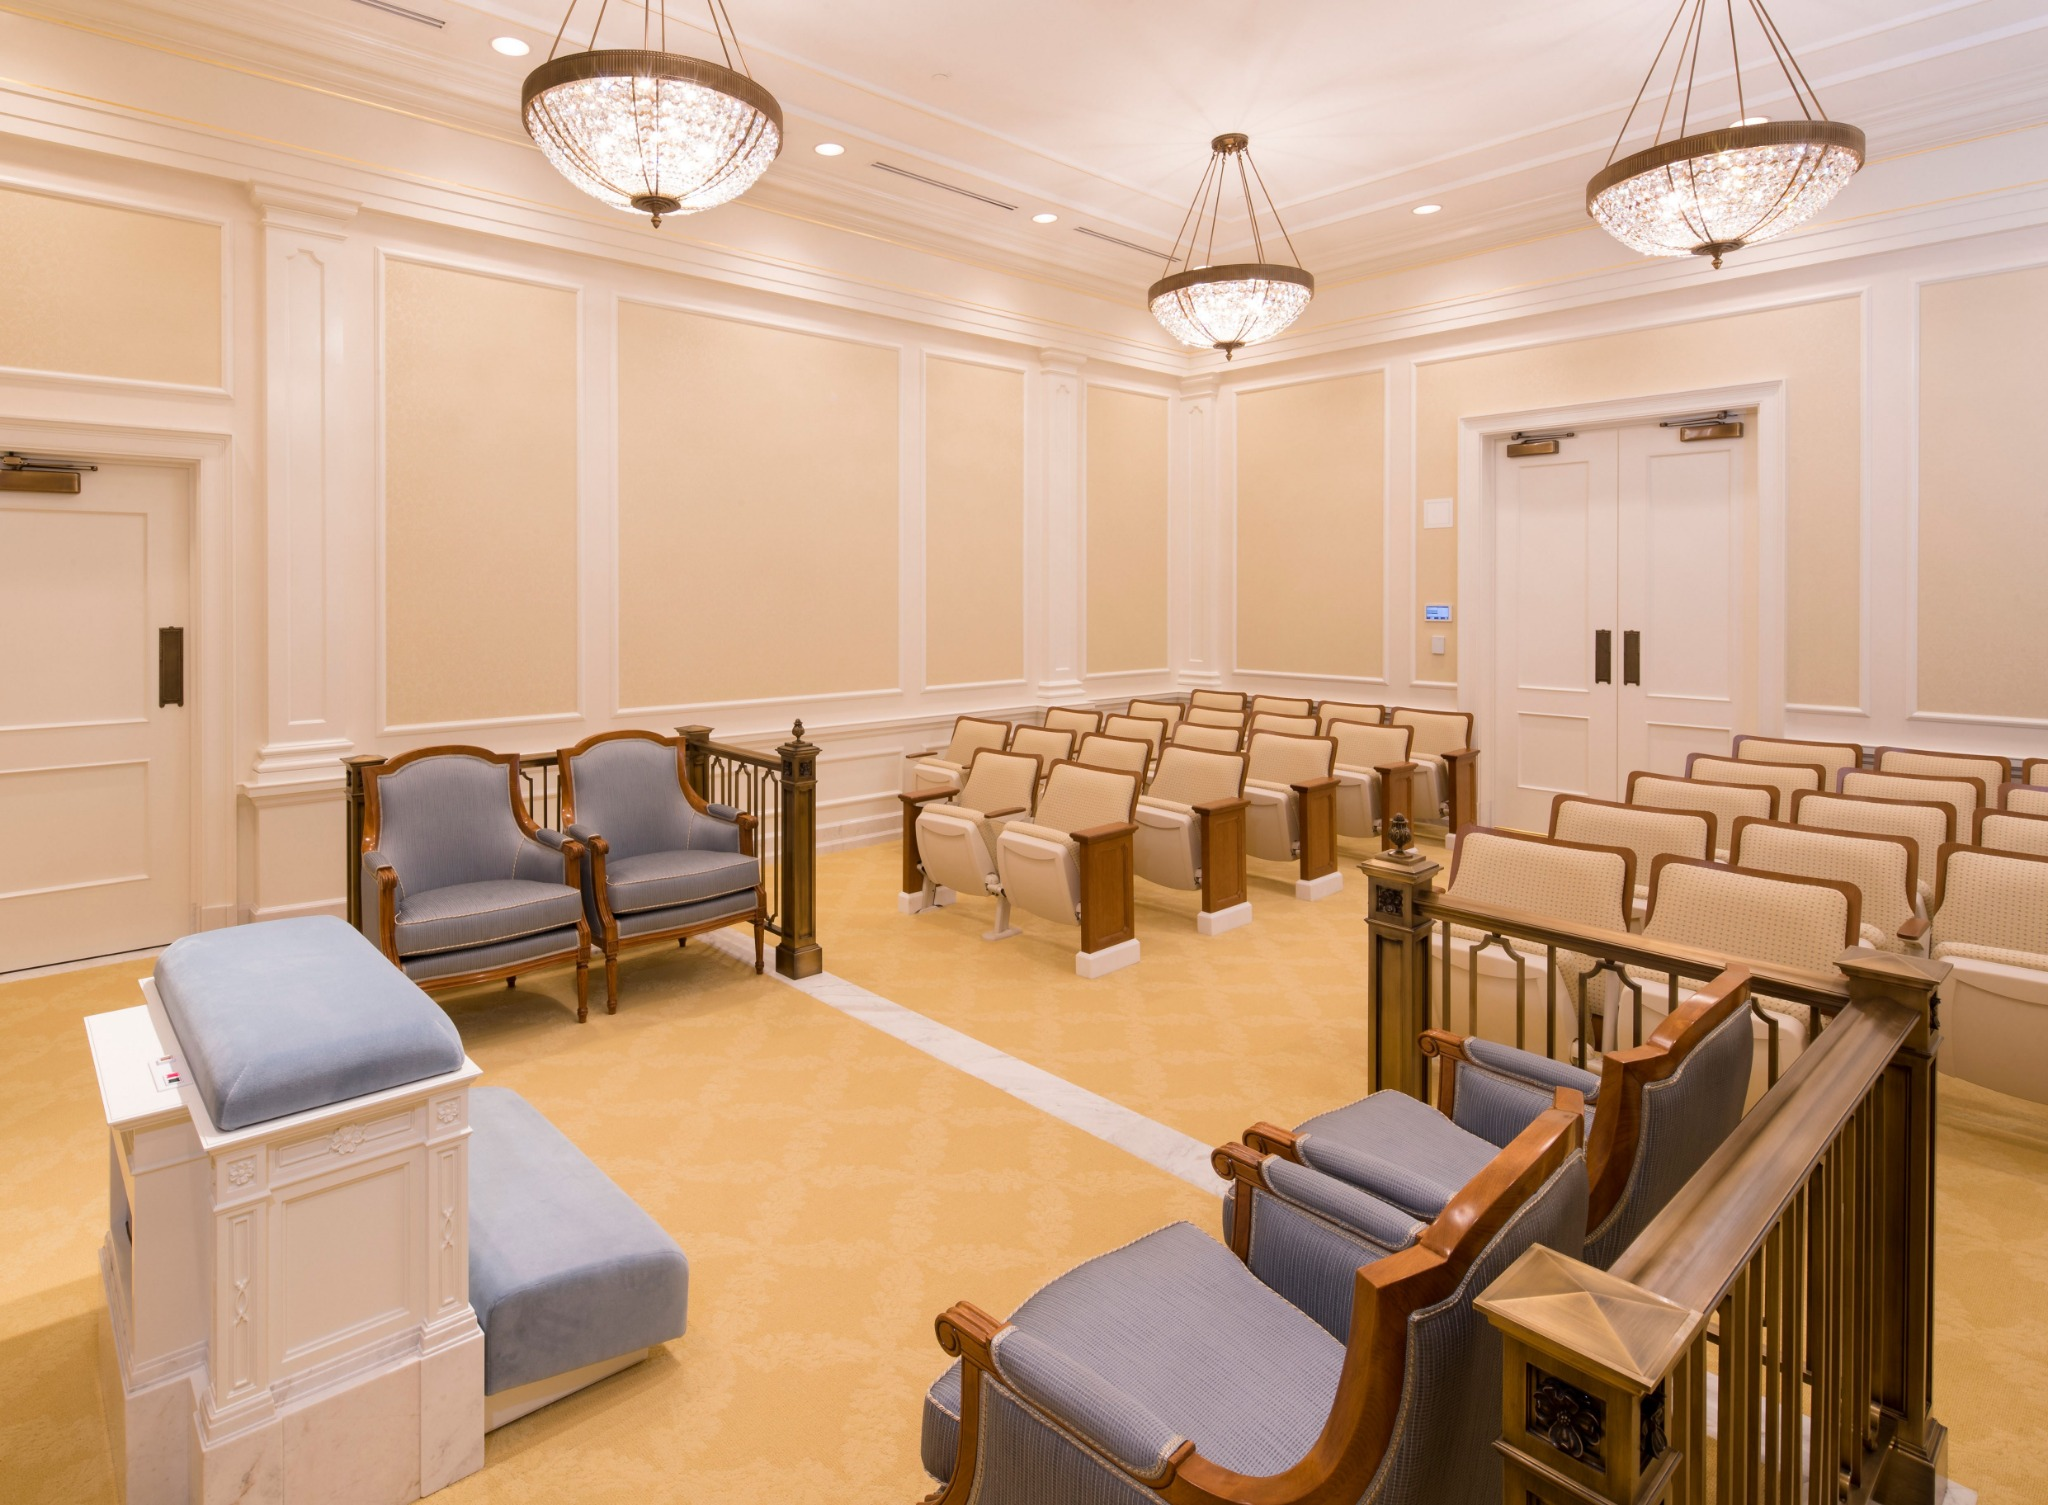 An instruction room in the Raleigh North Carolina Temple.